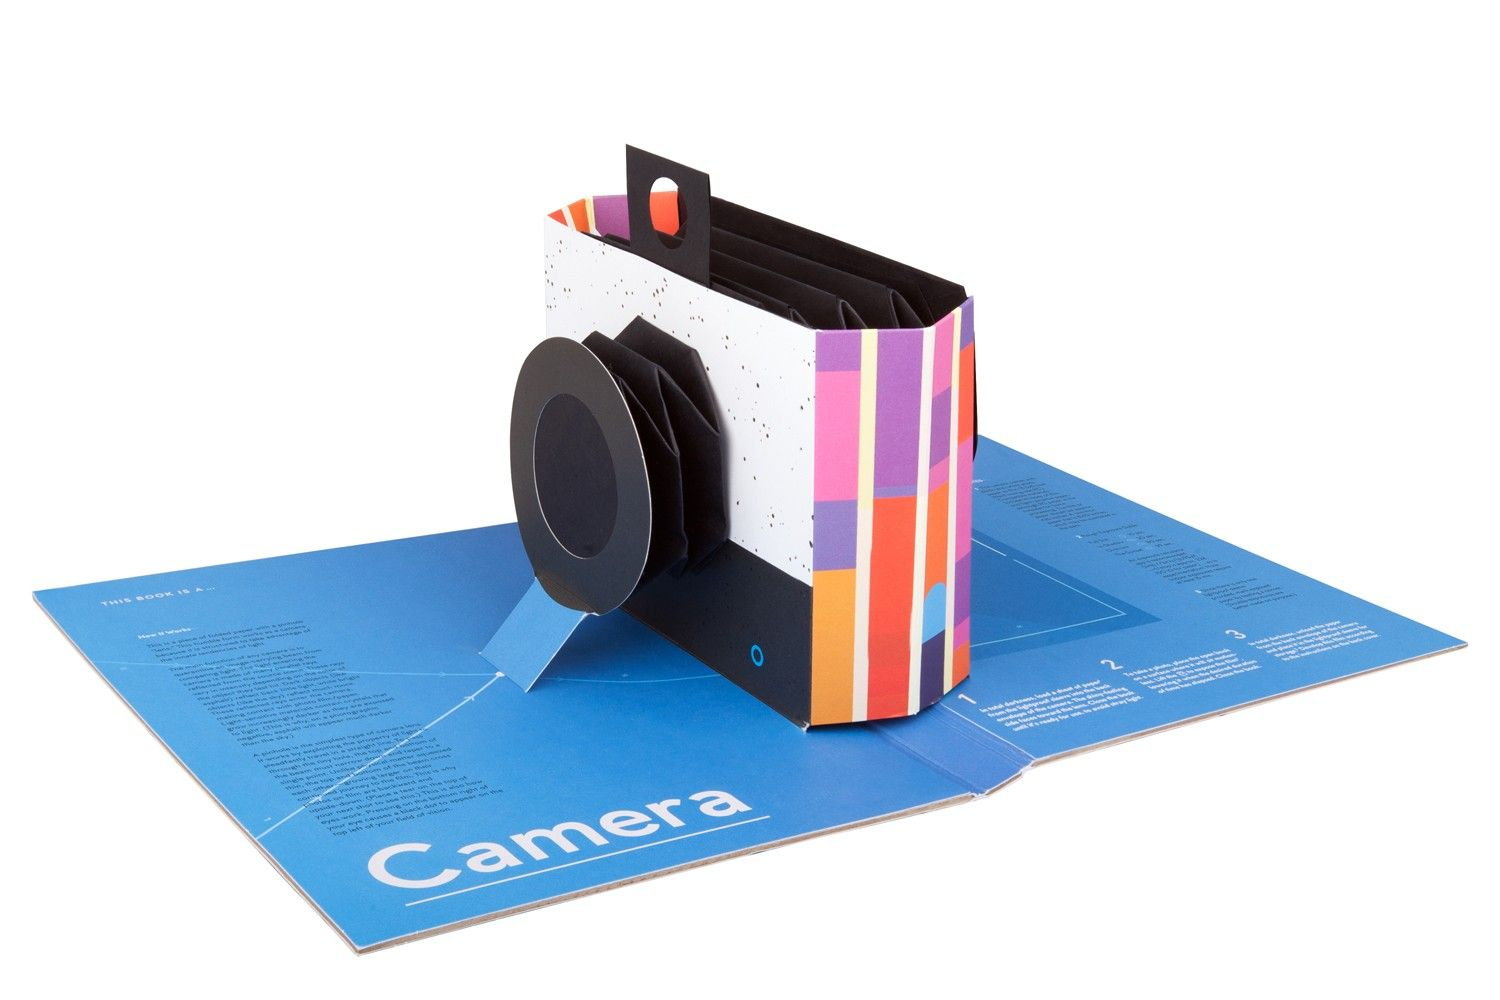 Open a book and capture a photo with this foldable pop-up pinhole camera!